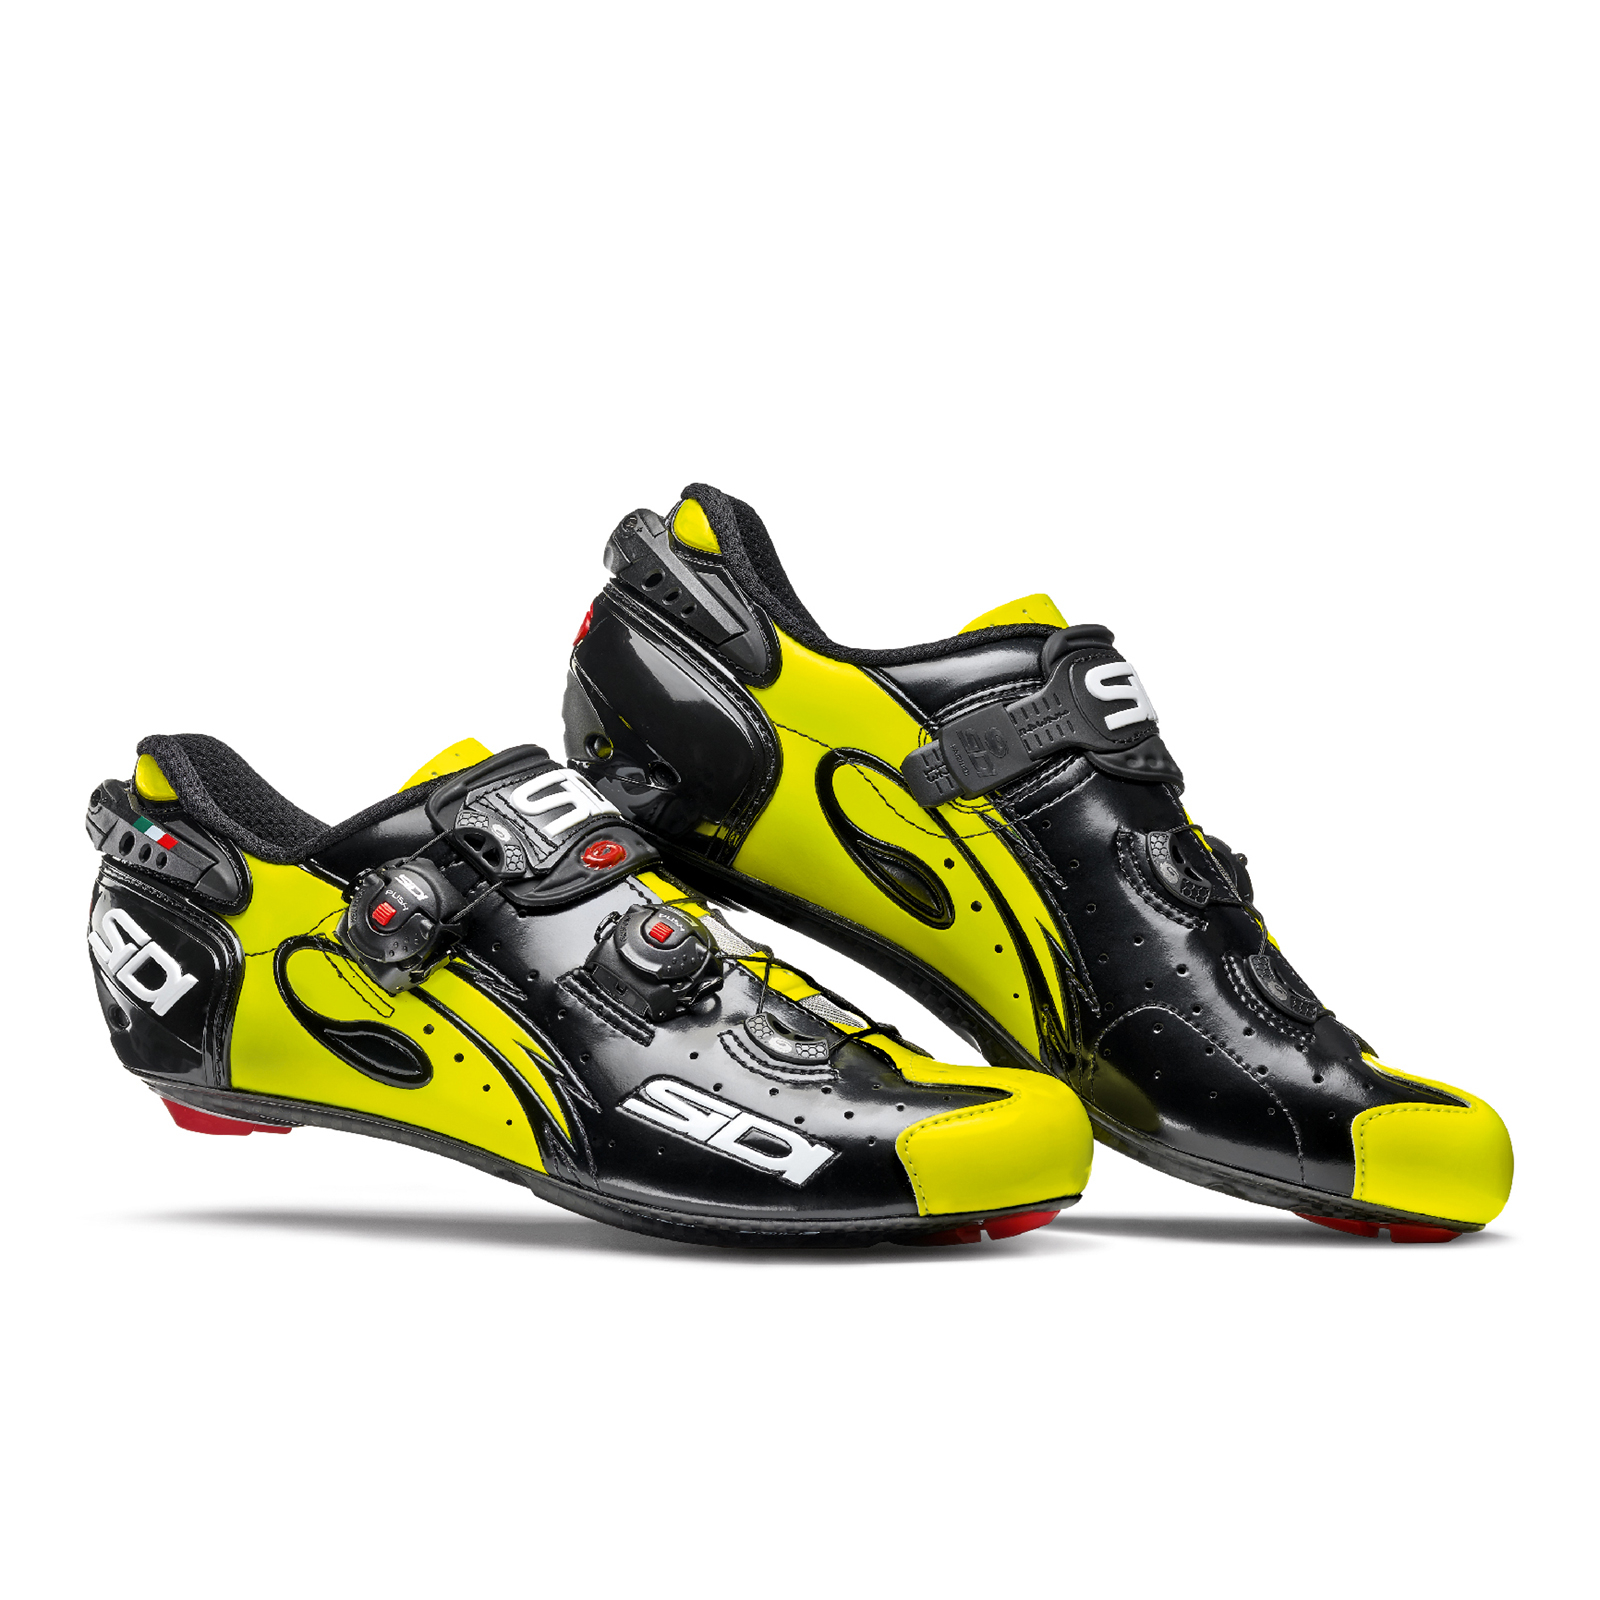 Sidi Wire Carbon Vernice Cycling Shoes - Black/Yellow Fluro